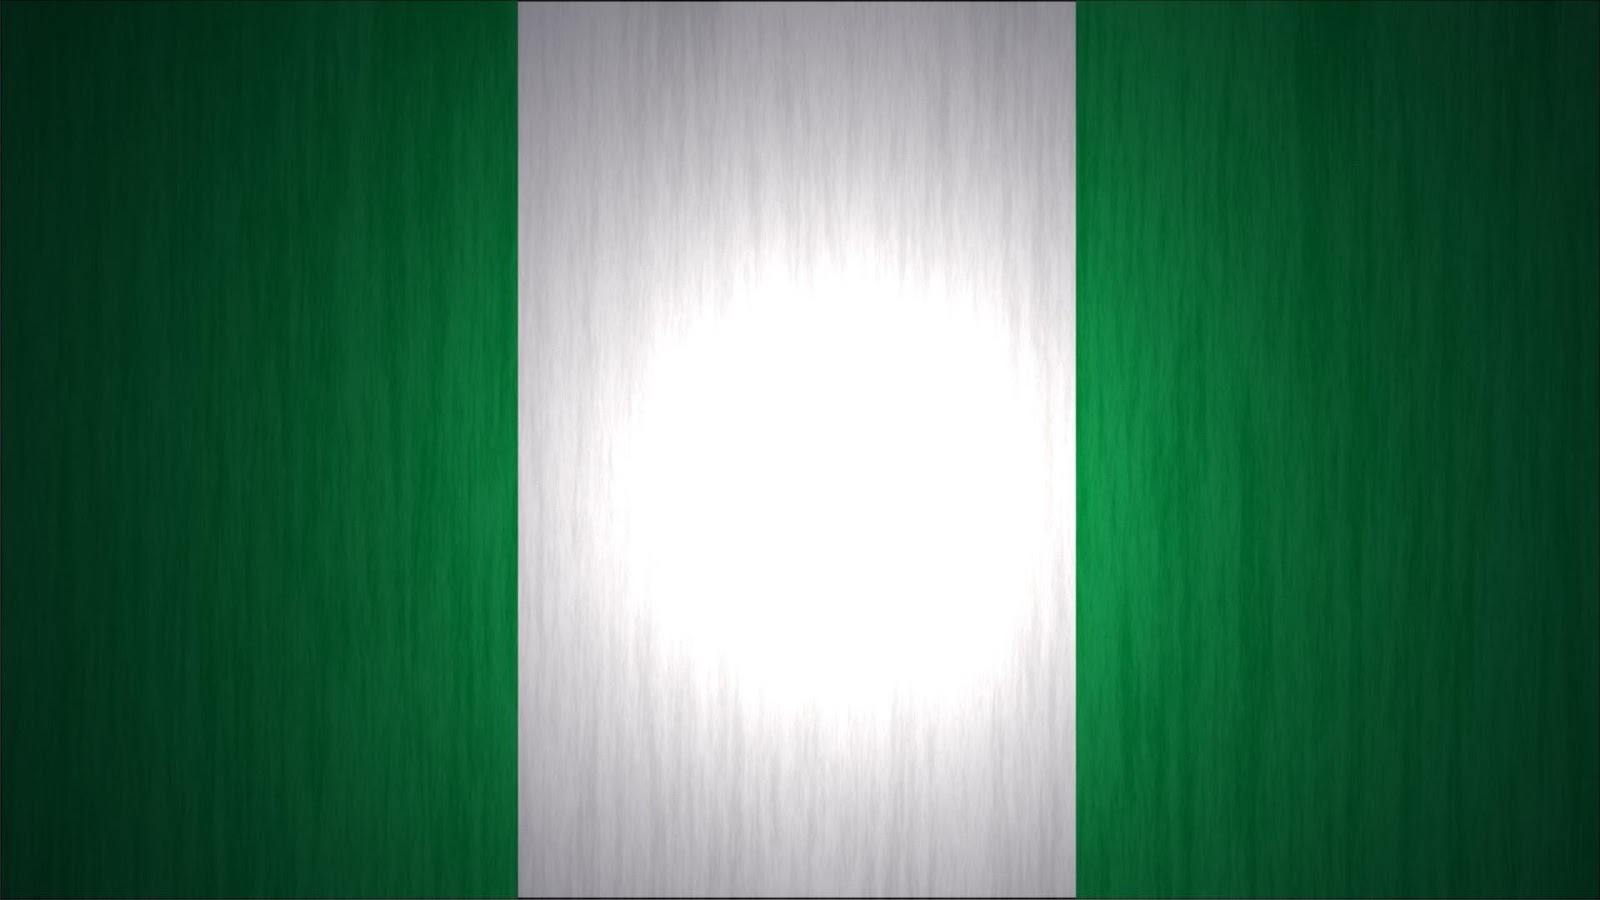 Nigeria Flag Wallpapers  Android Apps on Google Play